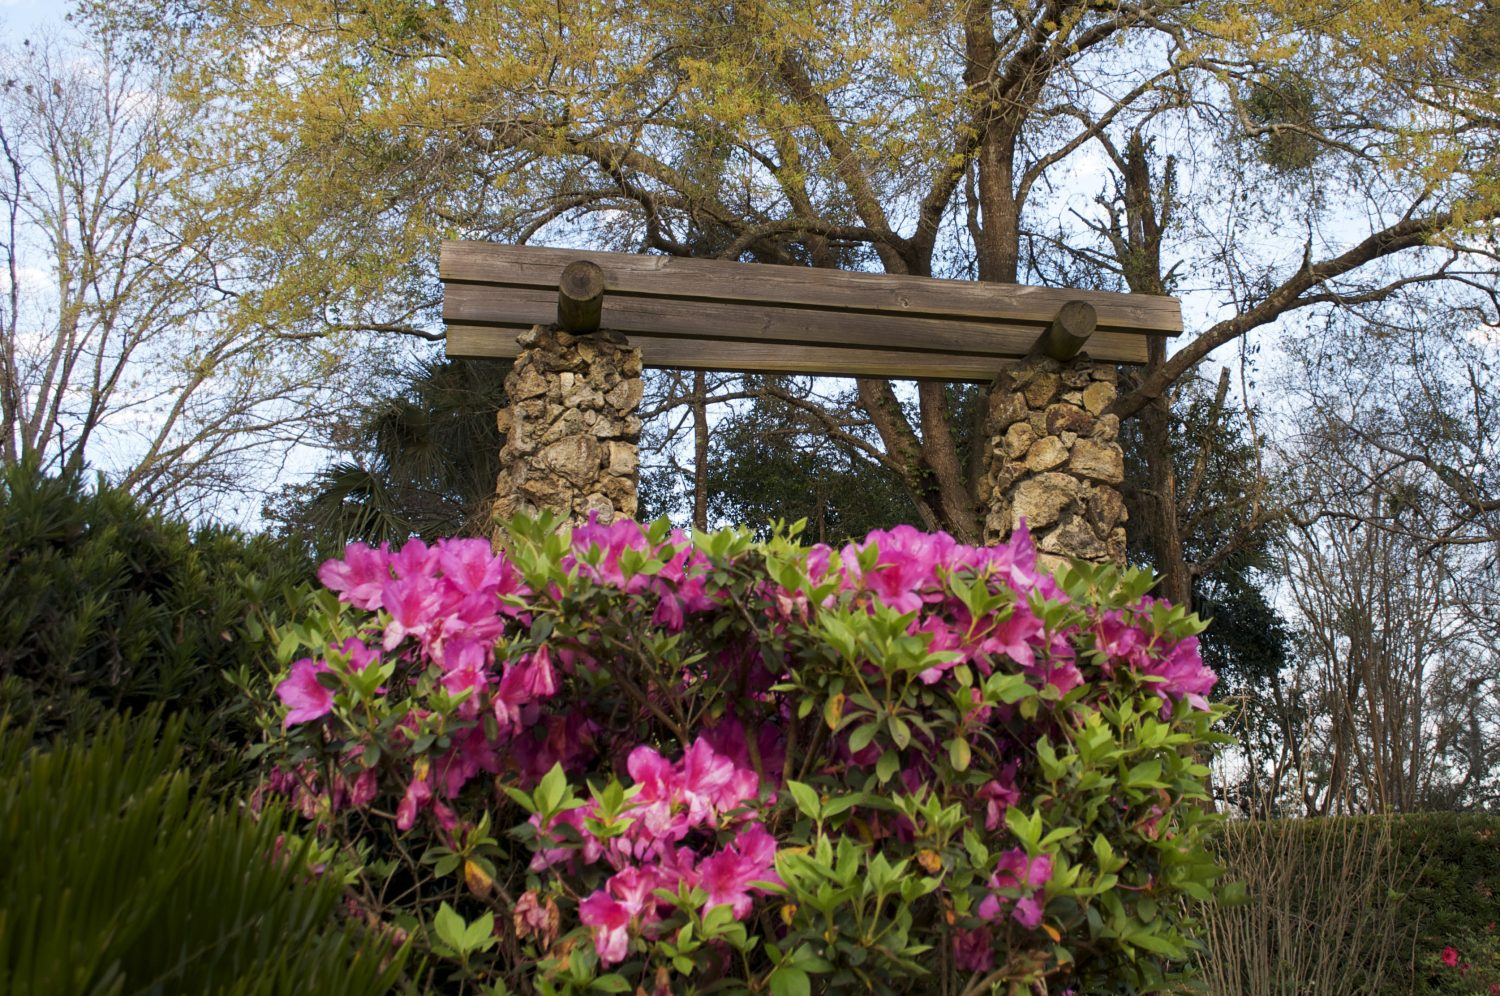 The Azalea Society of America congratulated Palatka, Fla., as an azalea city in Dec. 2006. Other certified cities reside in Texas, Mississippi, California, and Georgia. (Photo by Aubrey Stolzenberg)